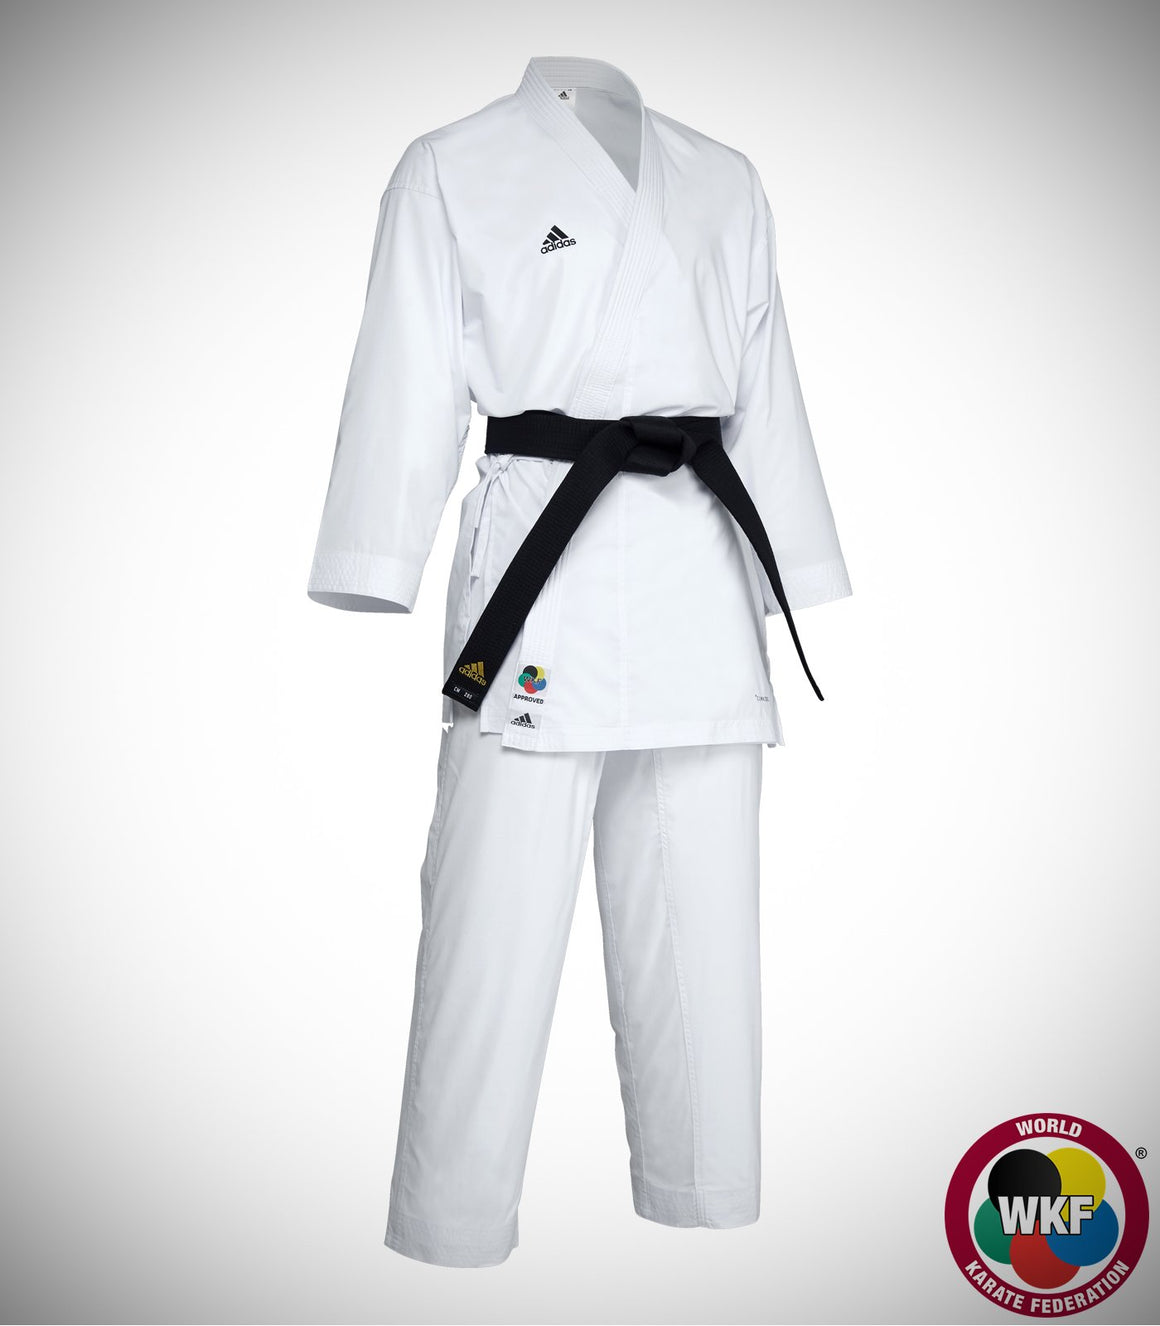 ADIDAS KARATE ADILIGHT UNIFORM